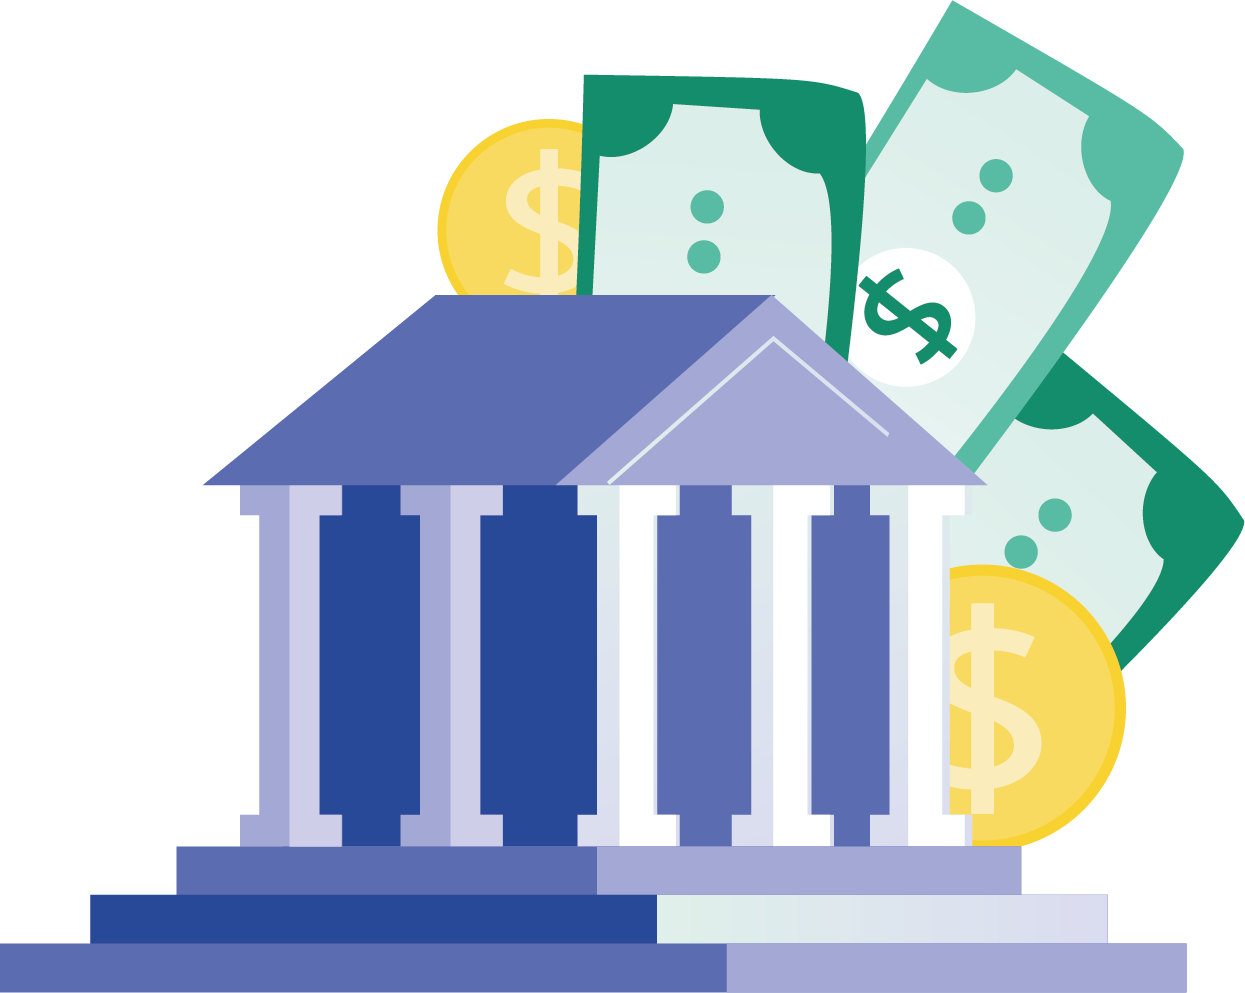 Become members' primary financial institution